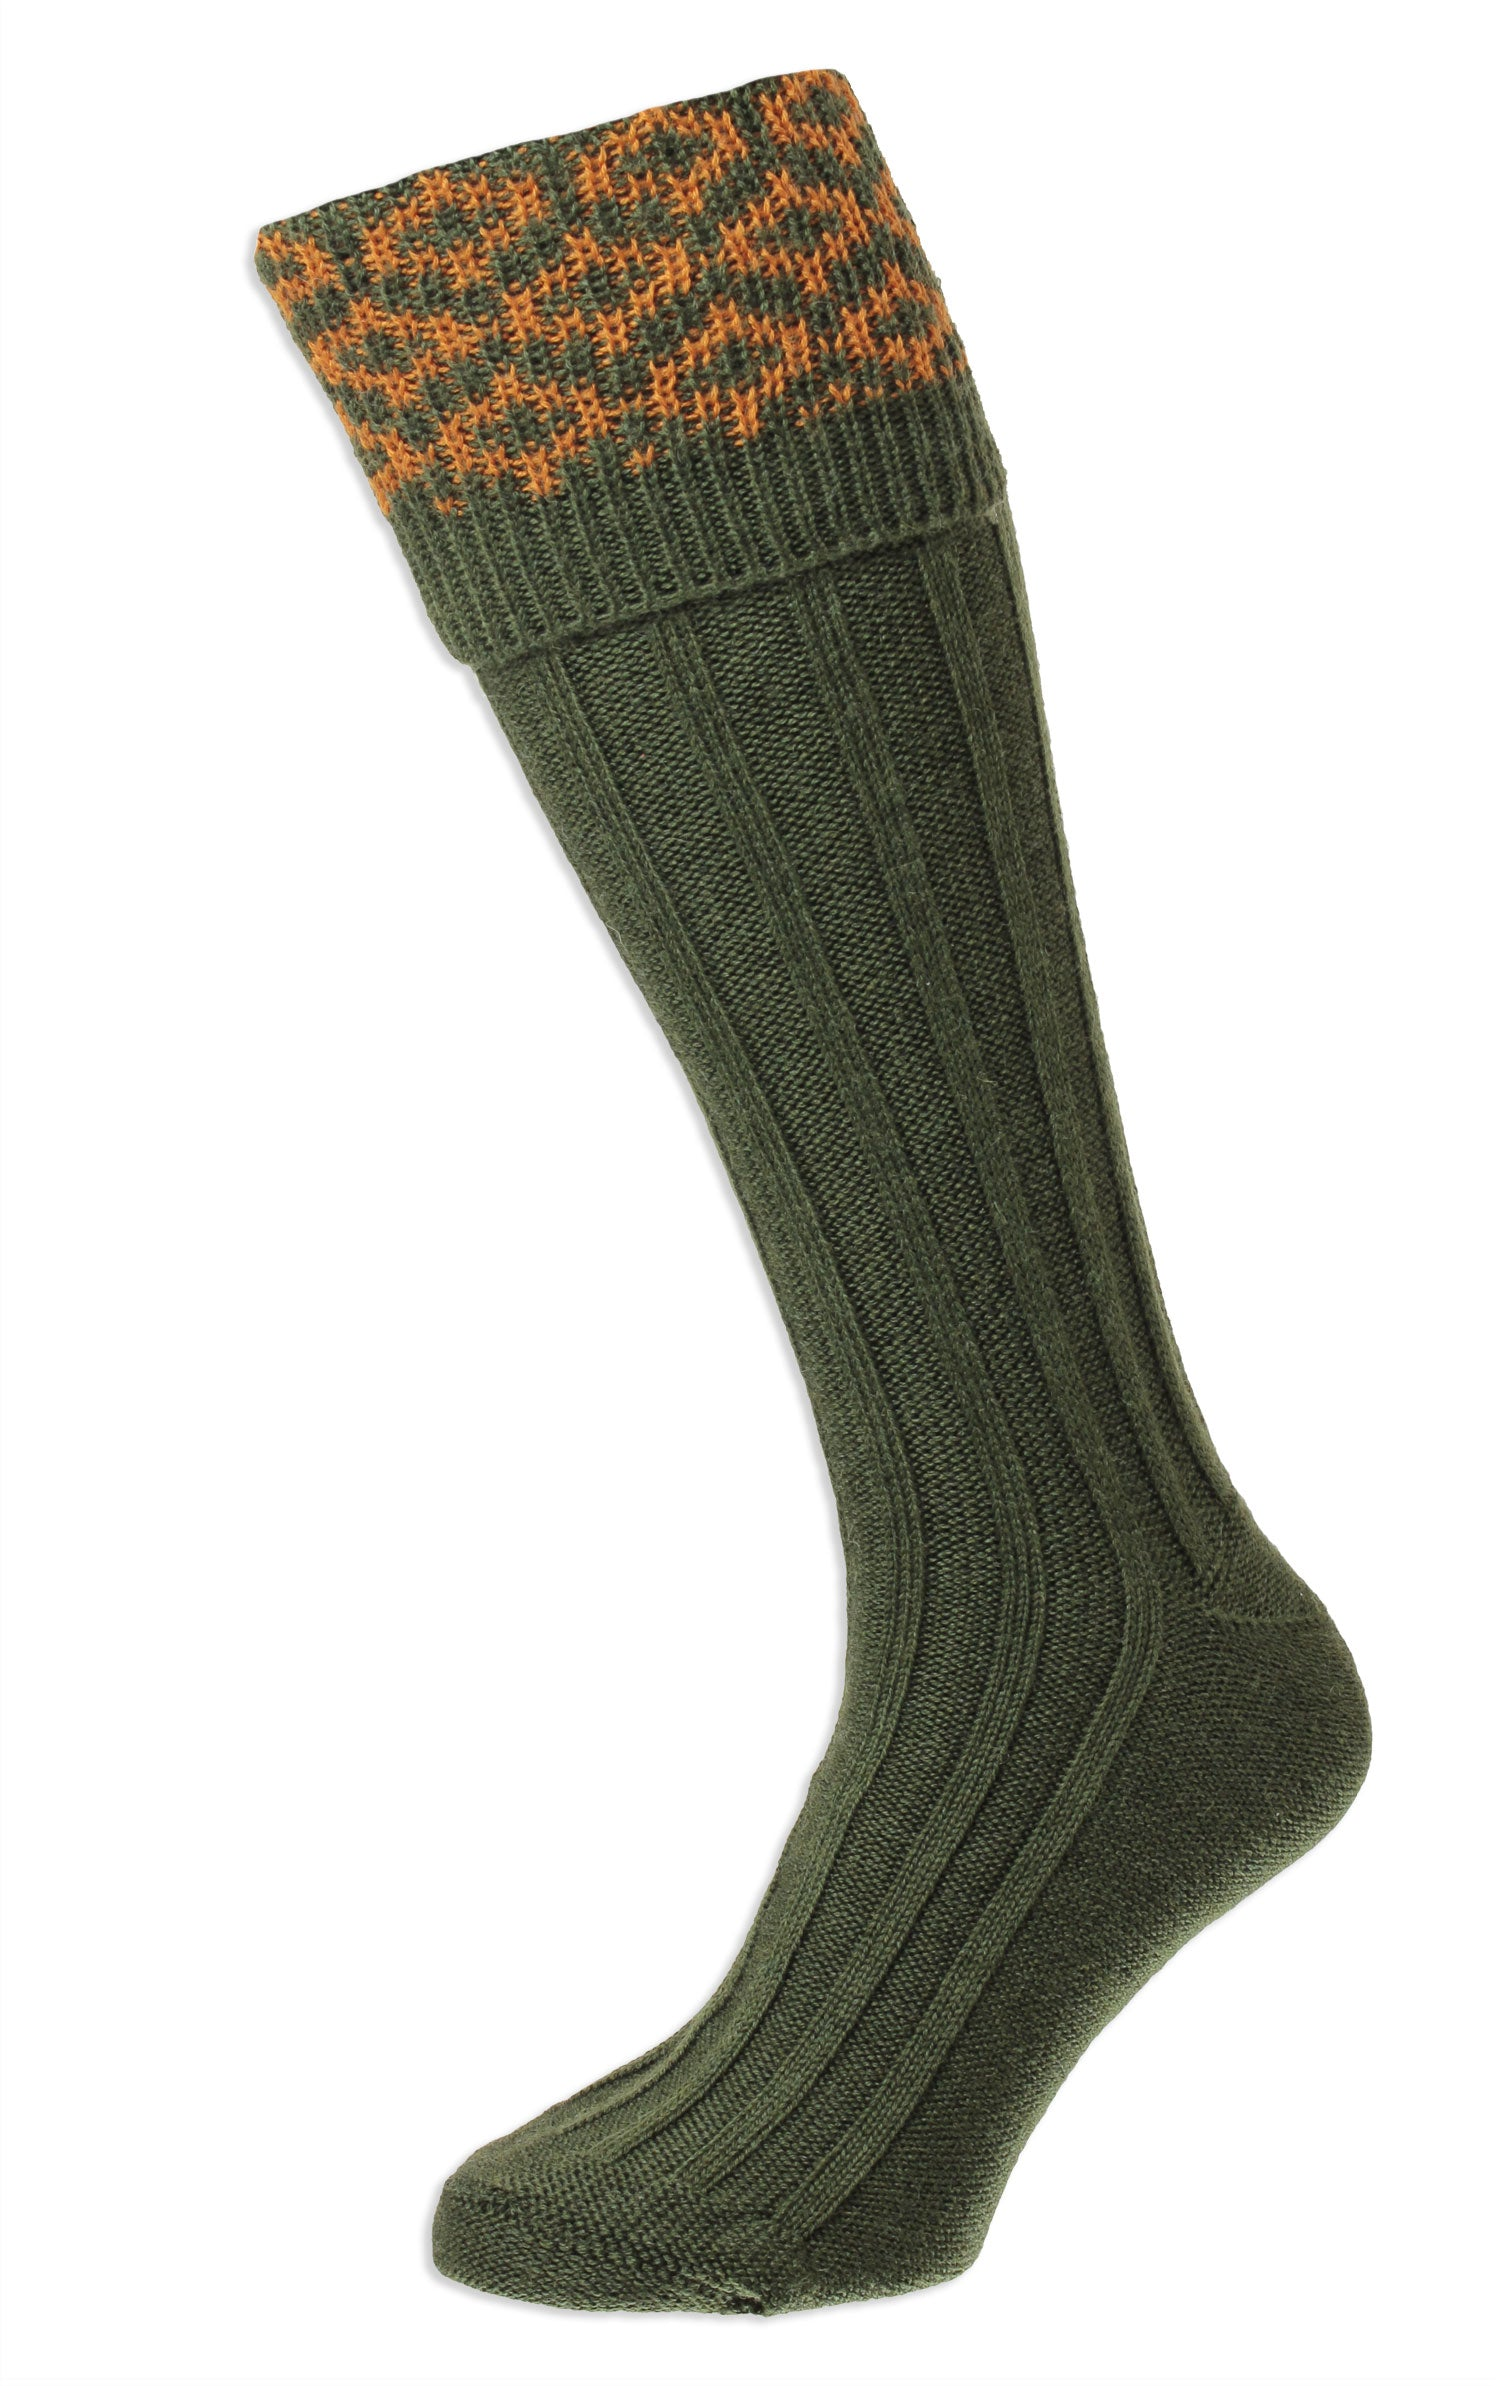 Olive HJ Hall Cushion Foot Long Sock | Patterned Top